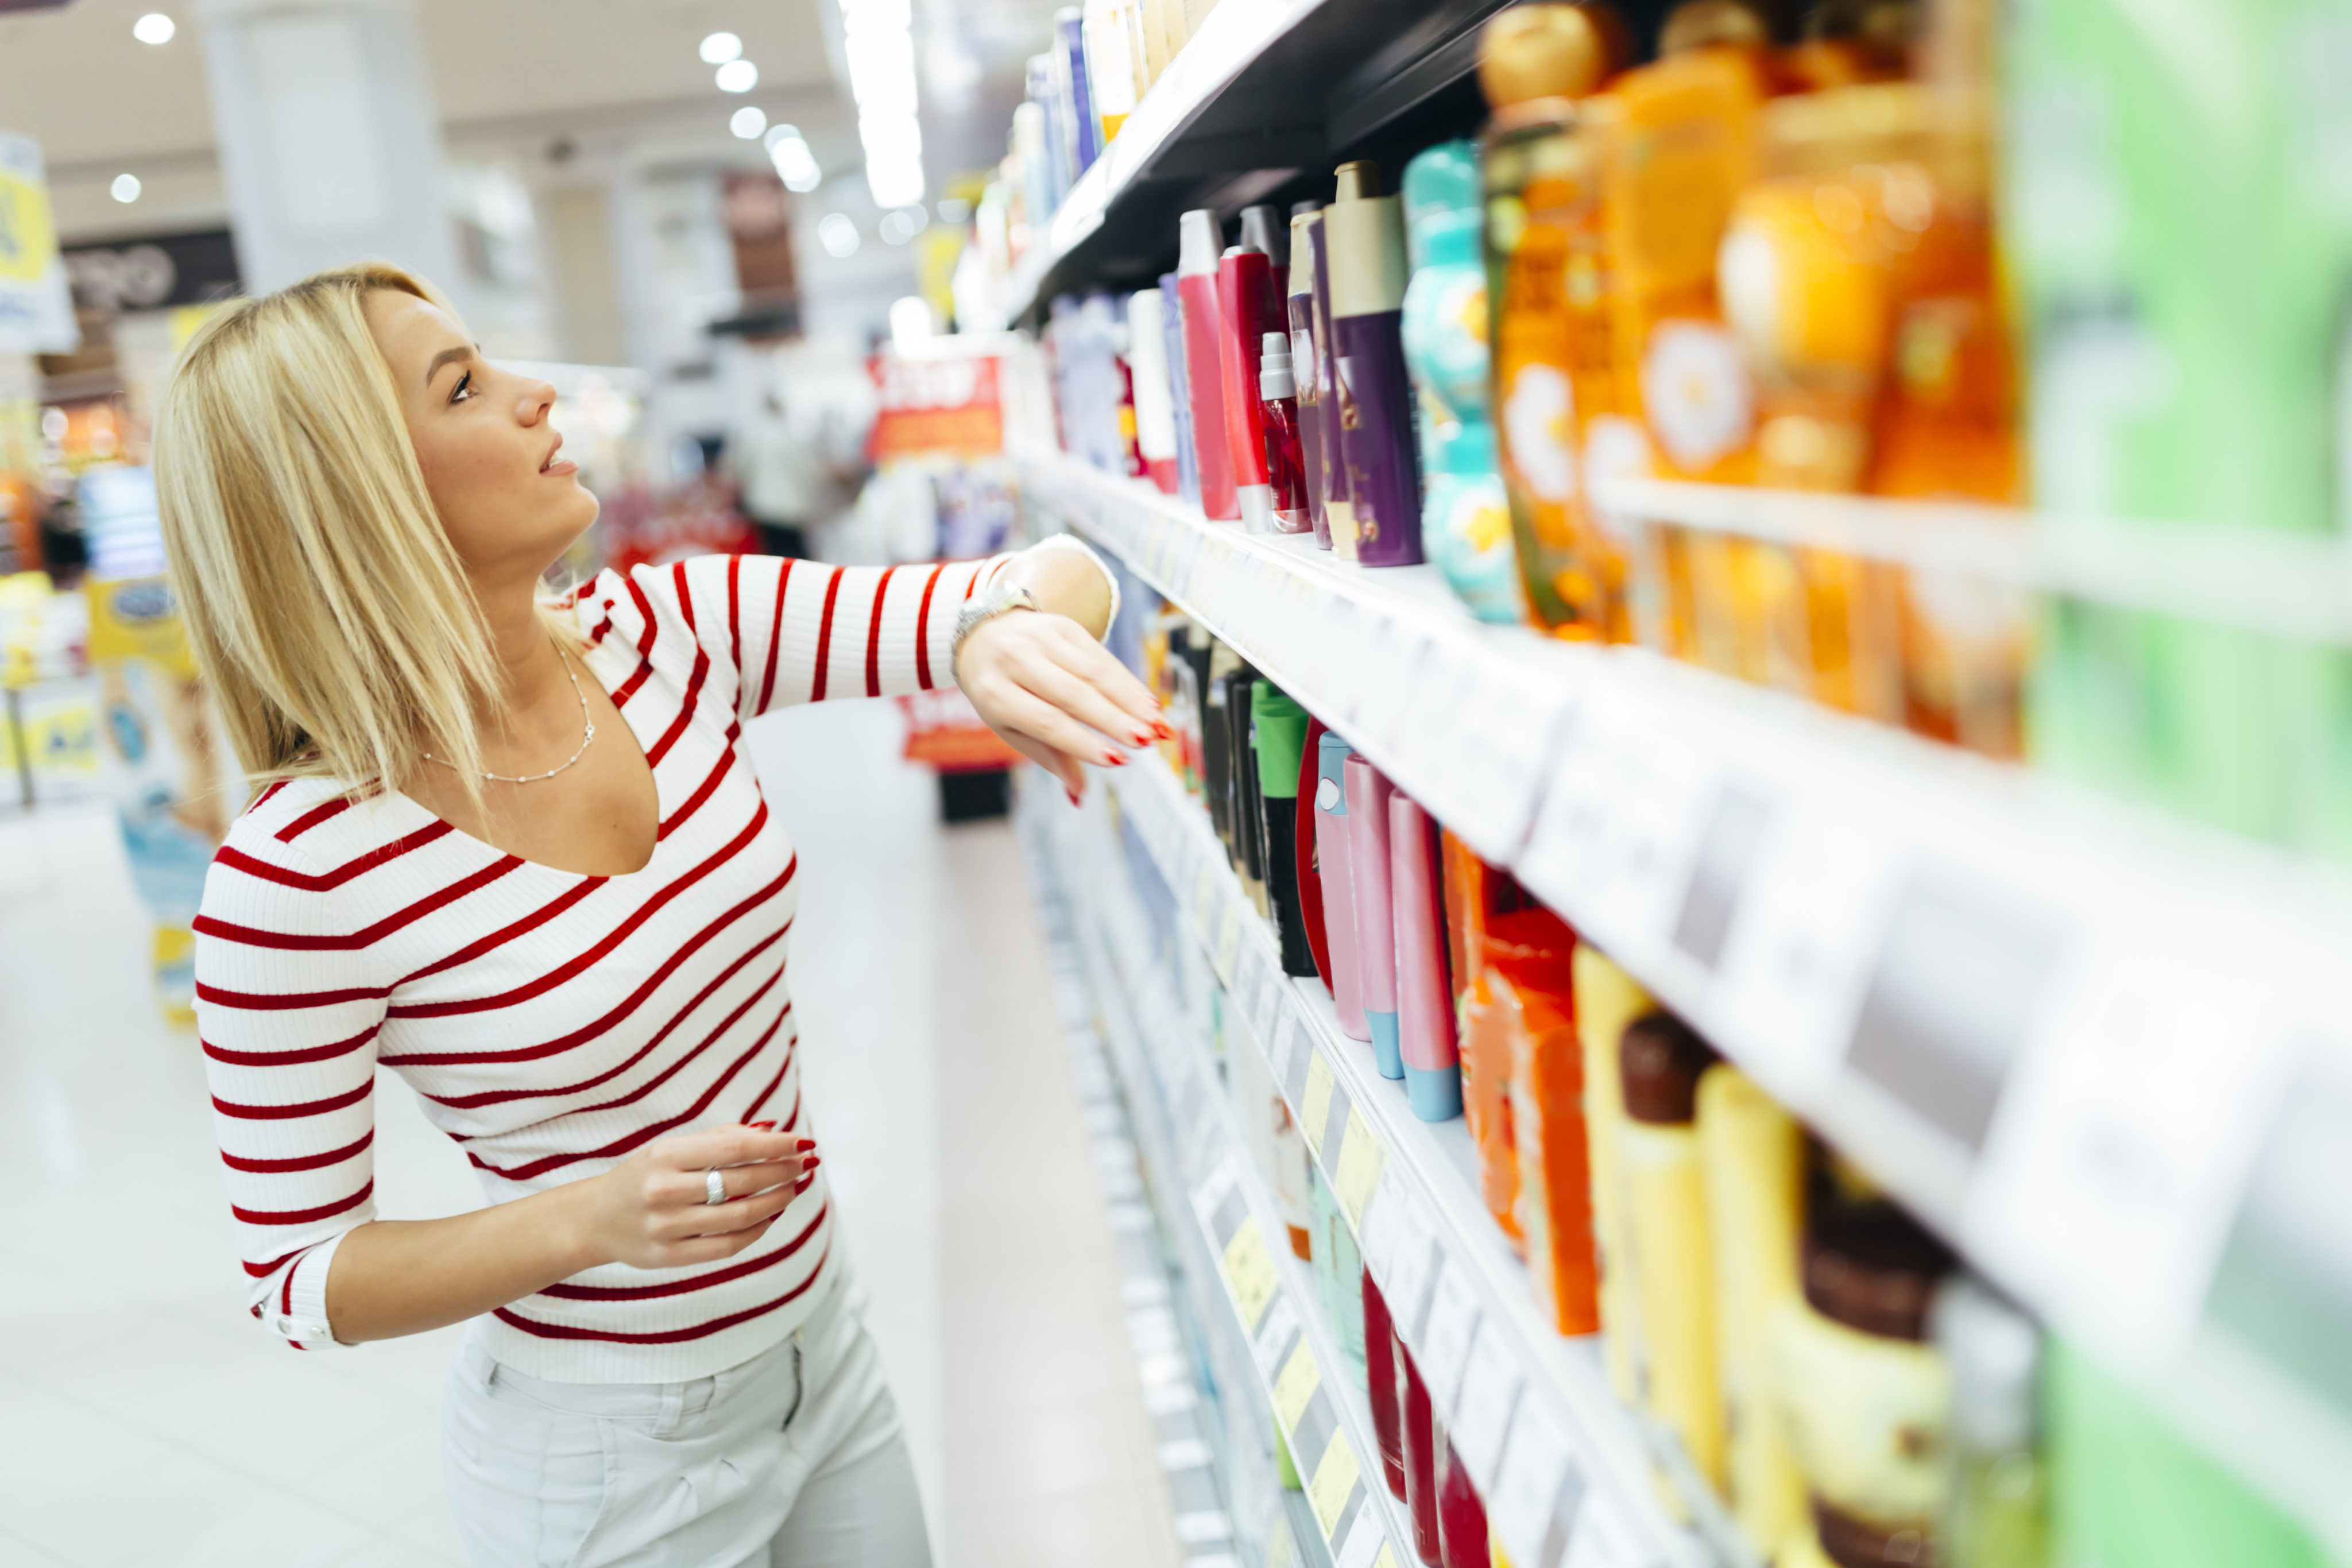 5 Things Not to Buy at Drugstores advise